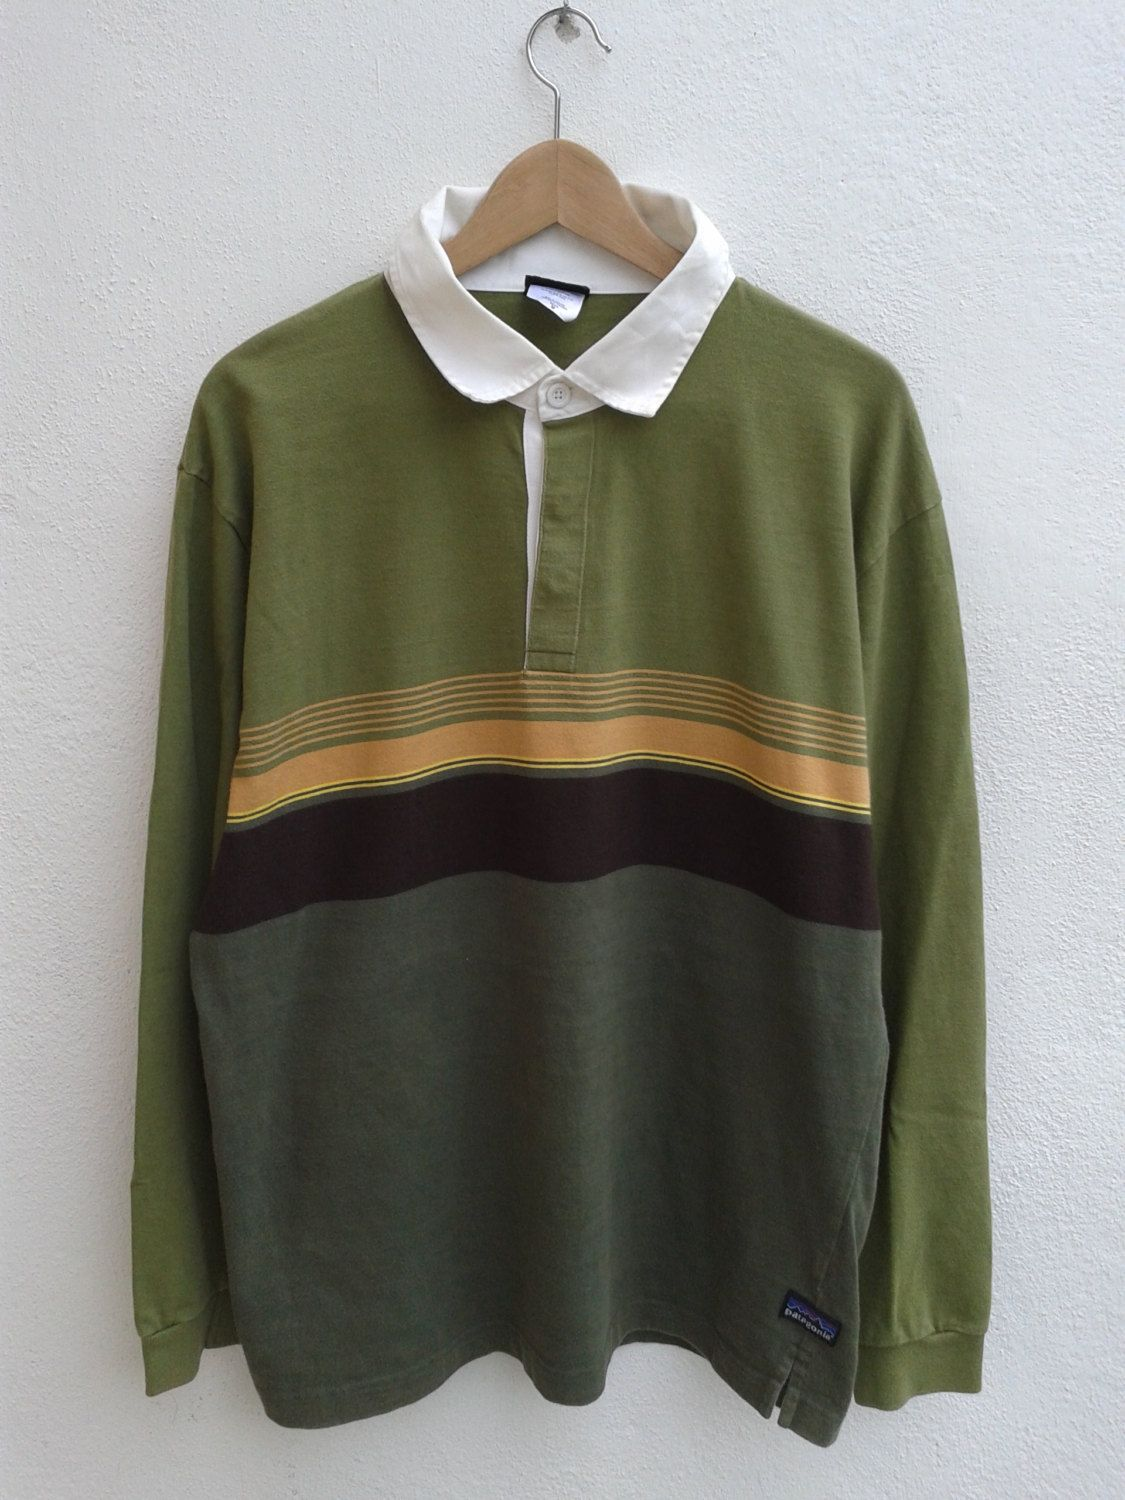 Summer Sale Vintage 90s Patagonia Organic Cotton Outdoor Gear Long Sleeve Color Block Stripes Polos Rugby Style Rugby Fashion Shirt Style Vintage Rugby Shirts